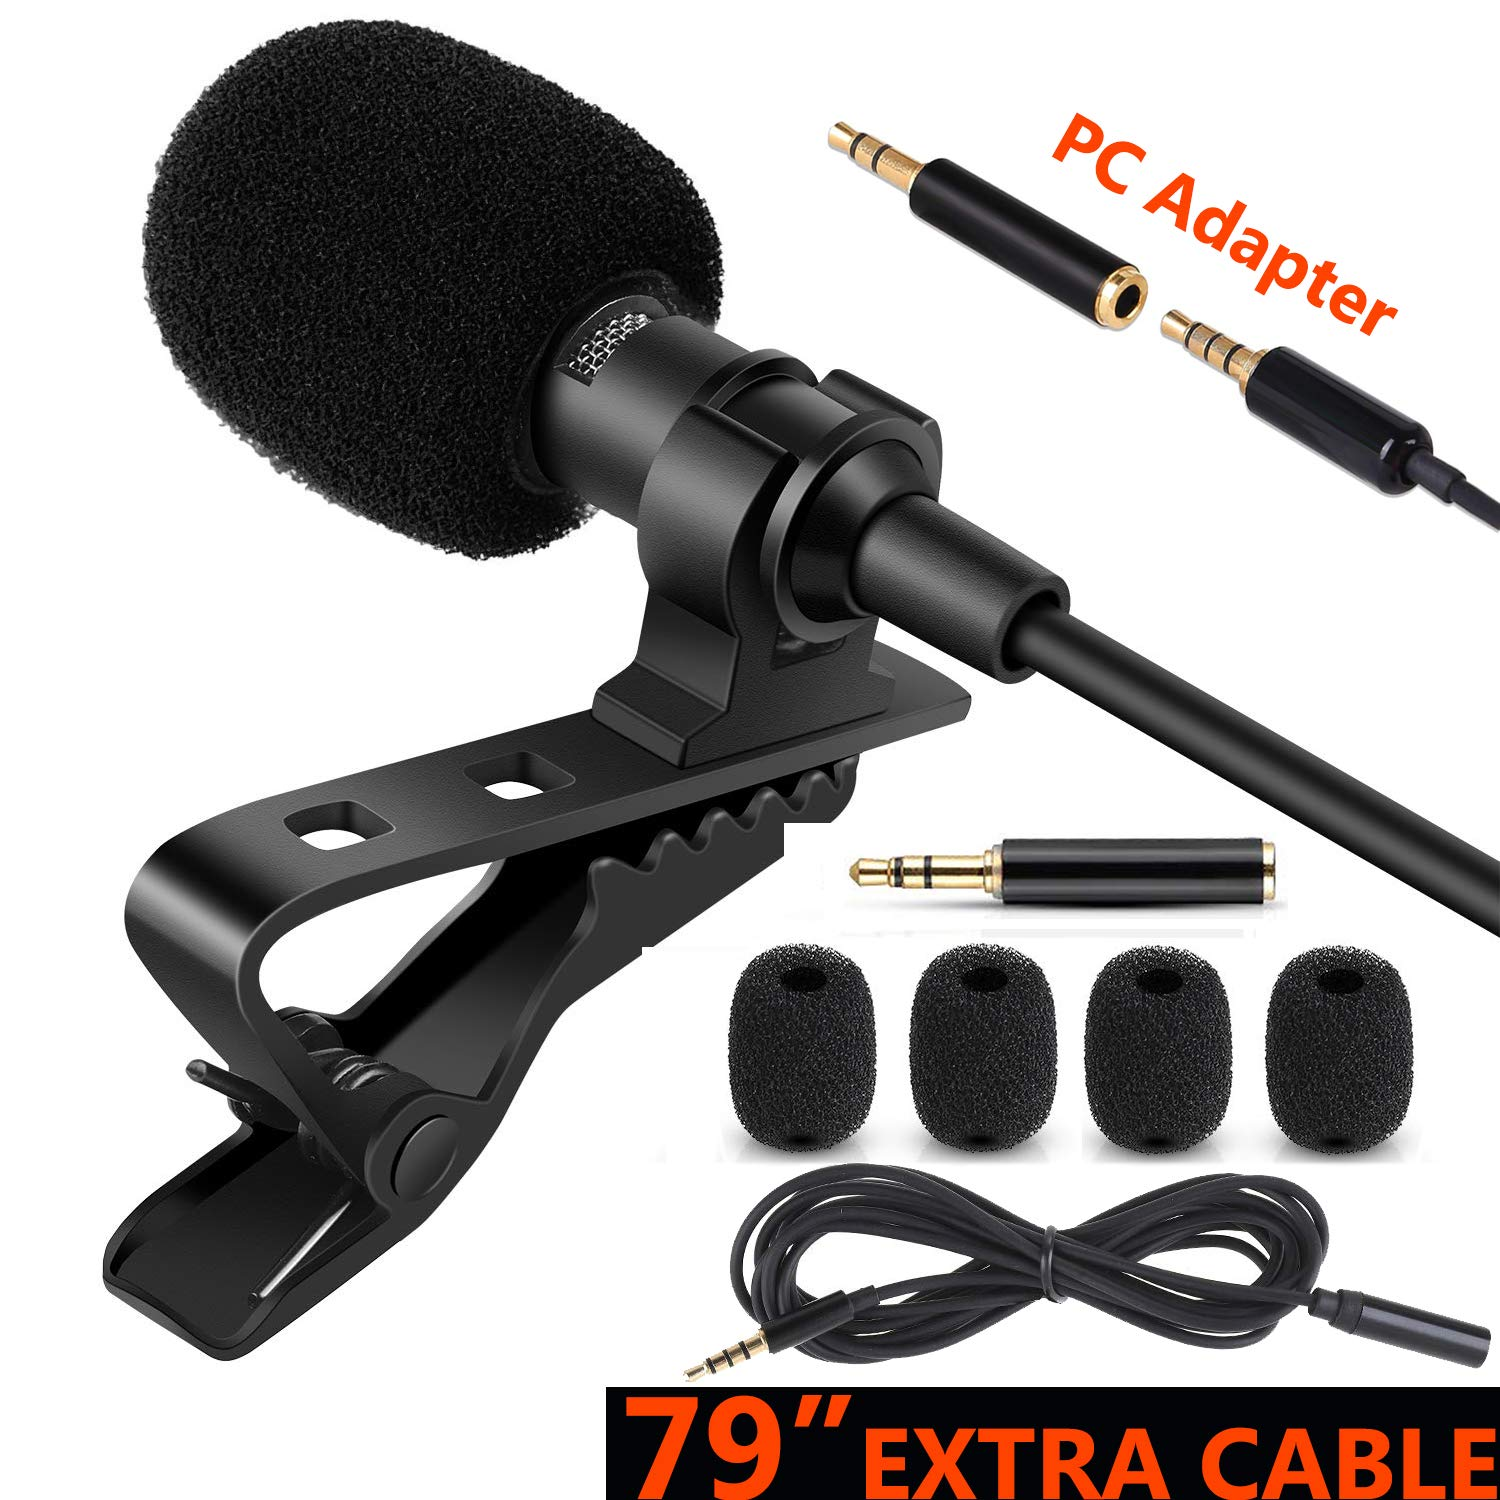 Microphone Smartphones%EF%BC%8CNoise Cancelling Recording Conference